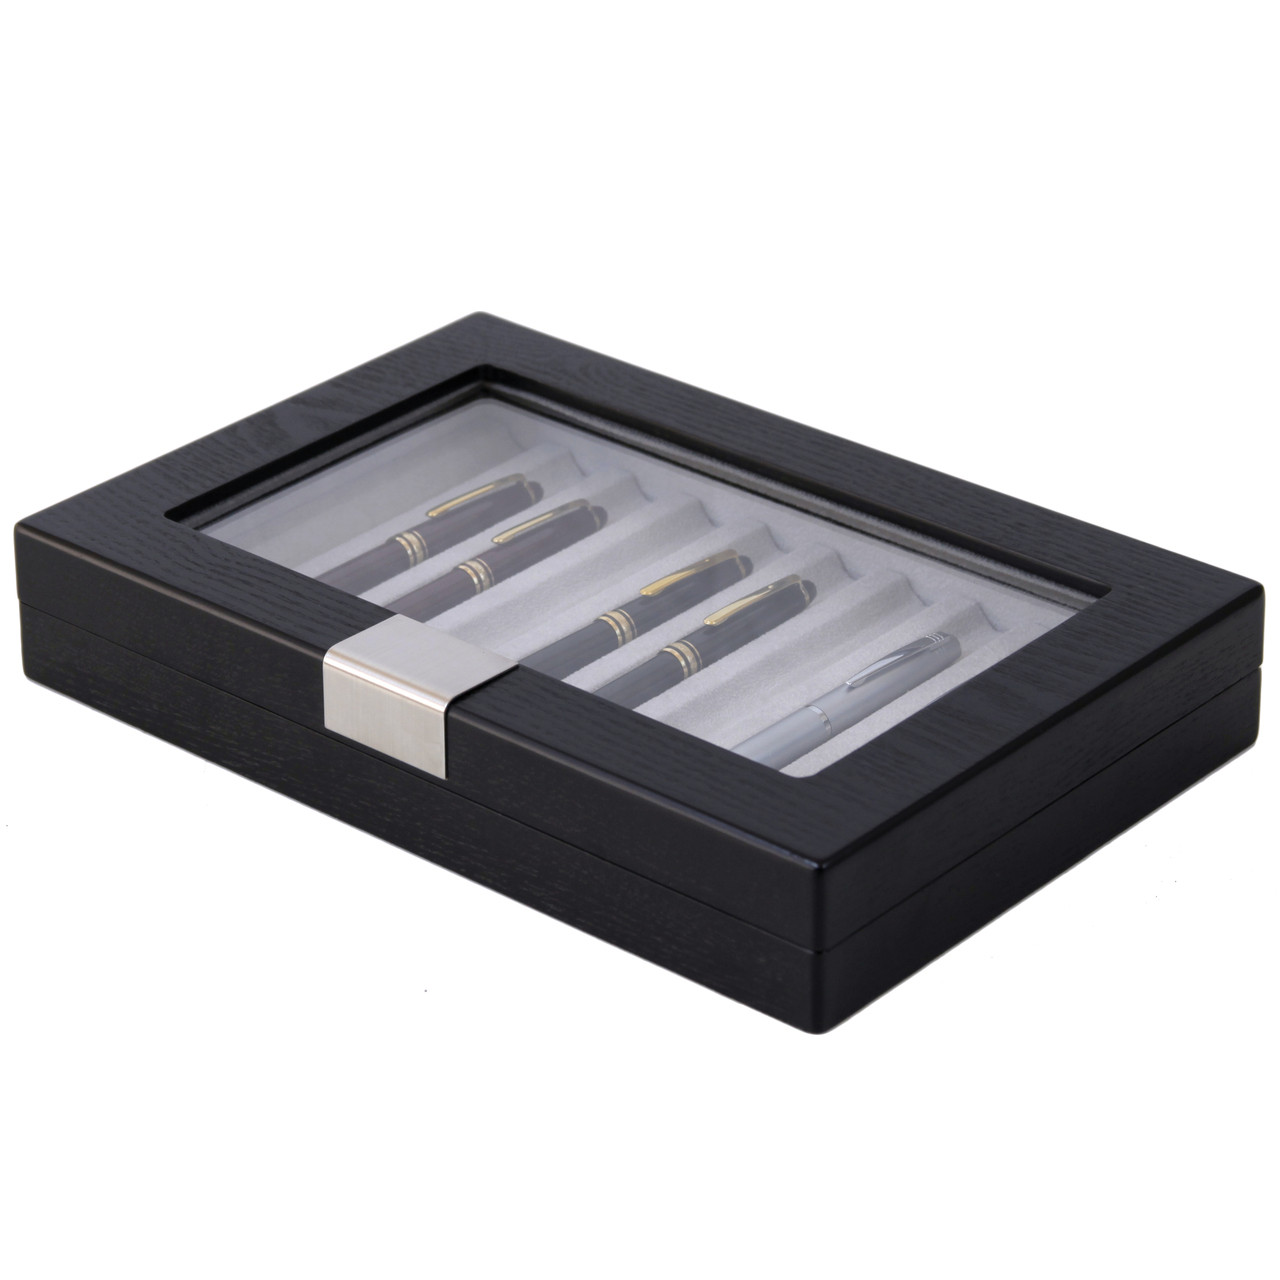 Pen Display Box in Black by Tech Swiss - Side View Closed